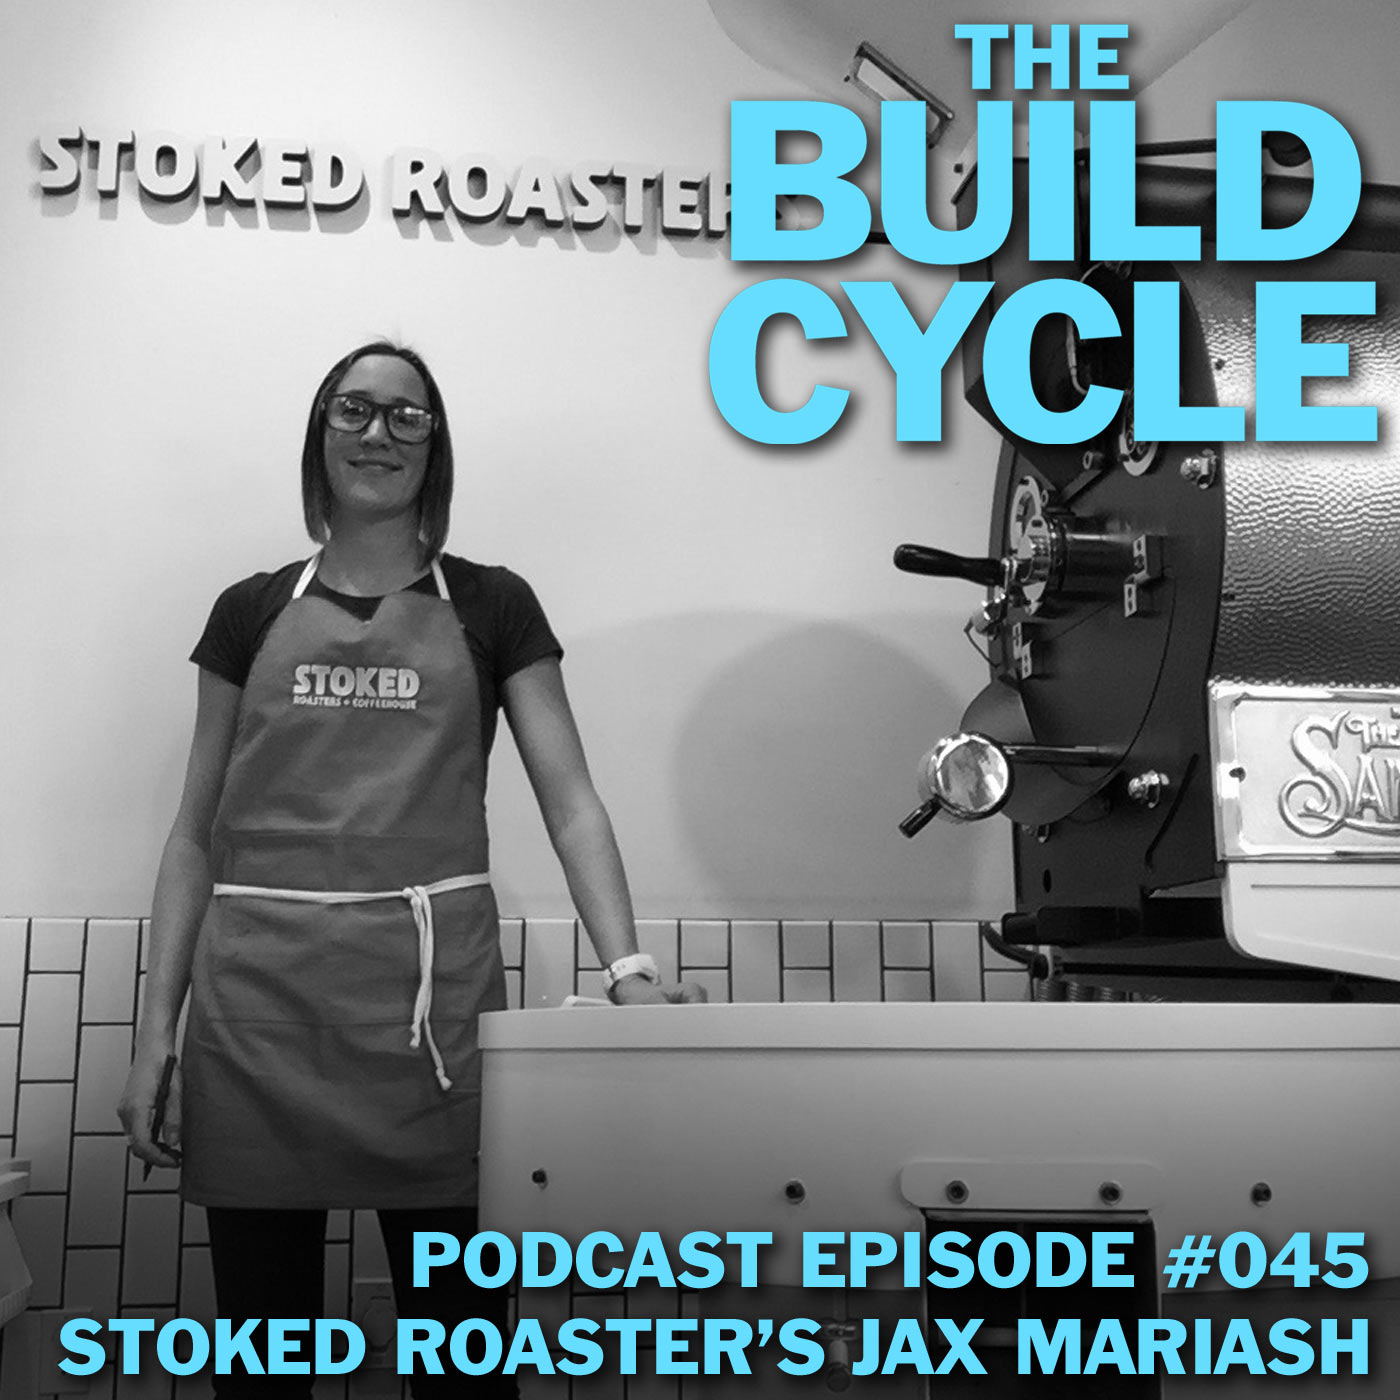 Ep #045 - How to Build a Better Brand with Stoked Roasters' Jax Mariash